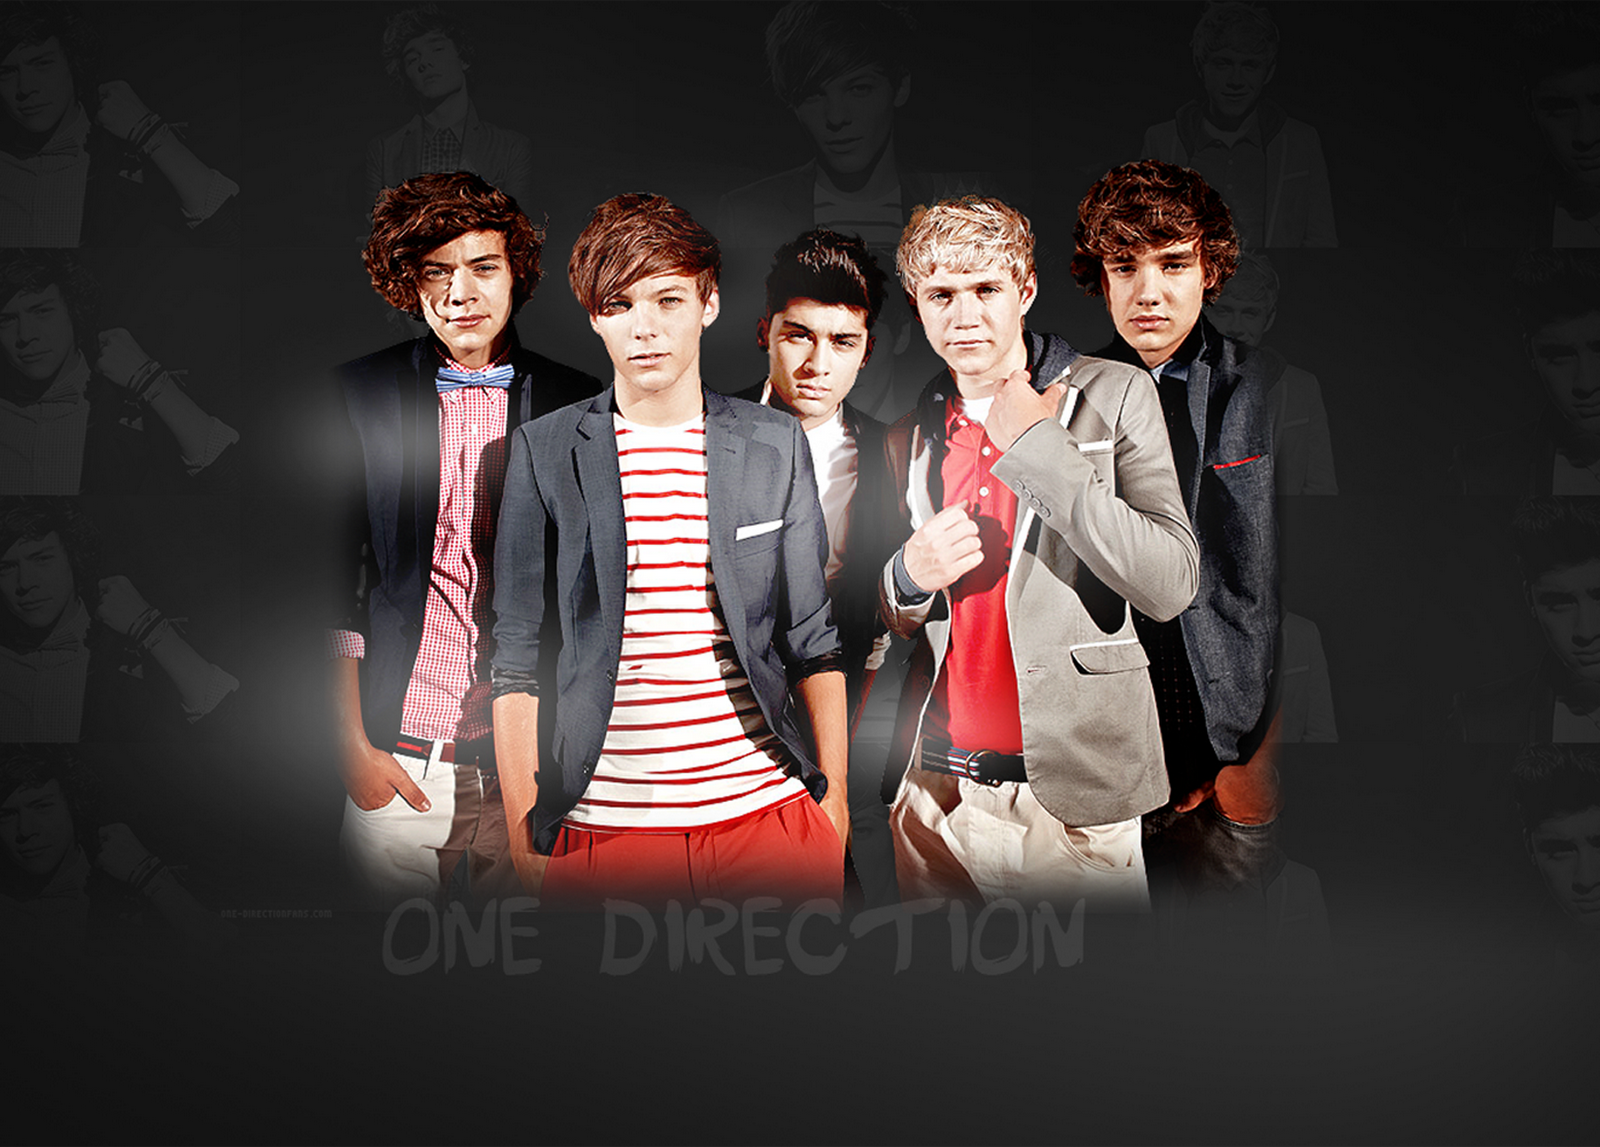 One Direction Wallpapers For Computer